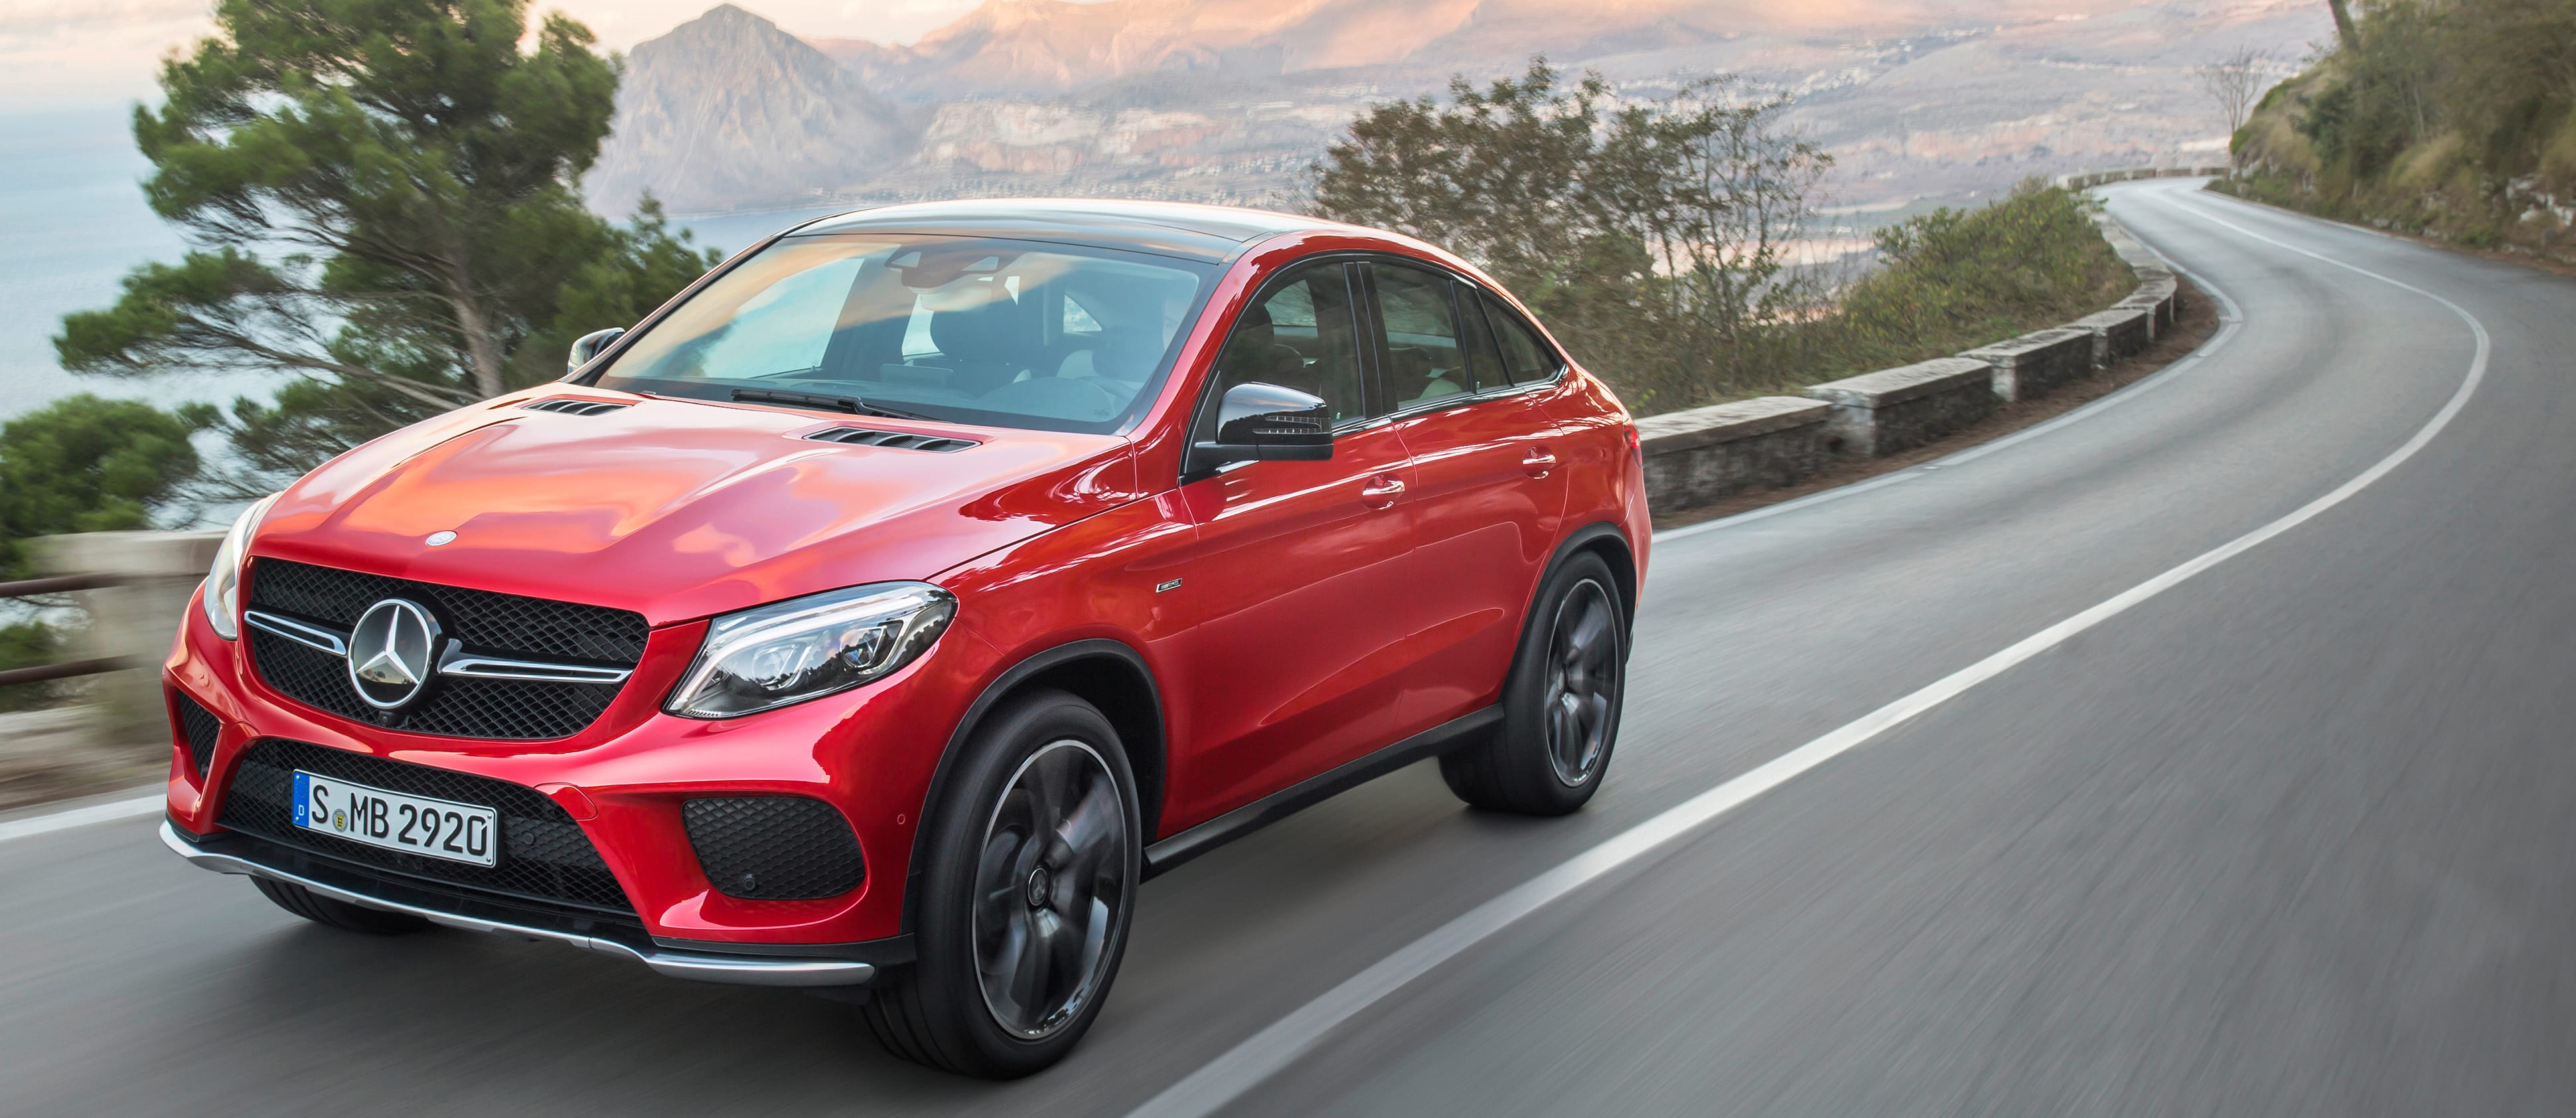 2015 Mercedes GLE Coupe review